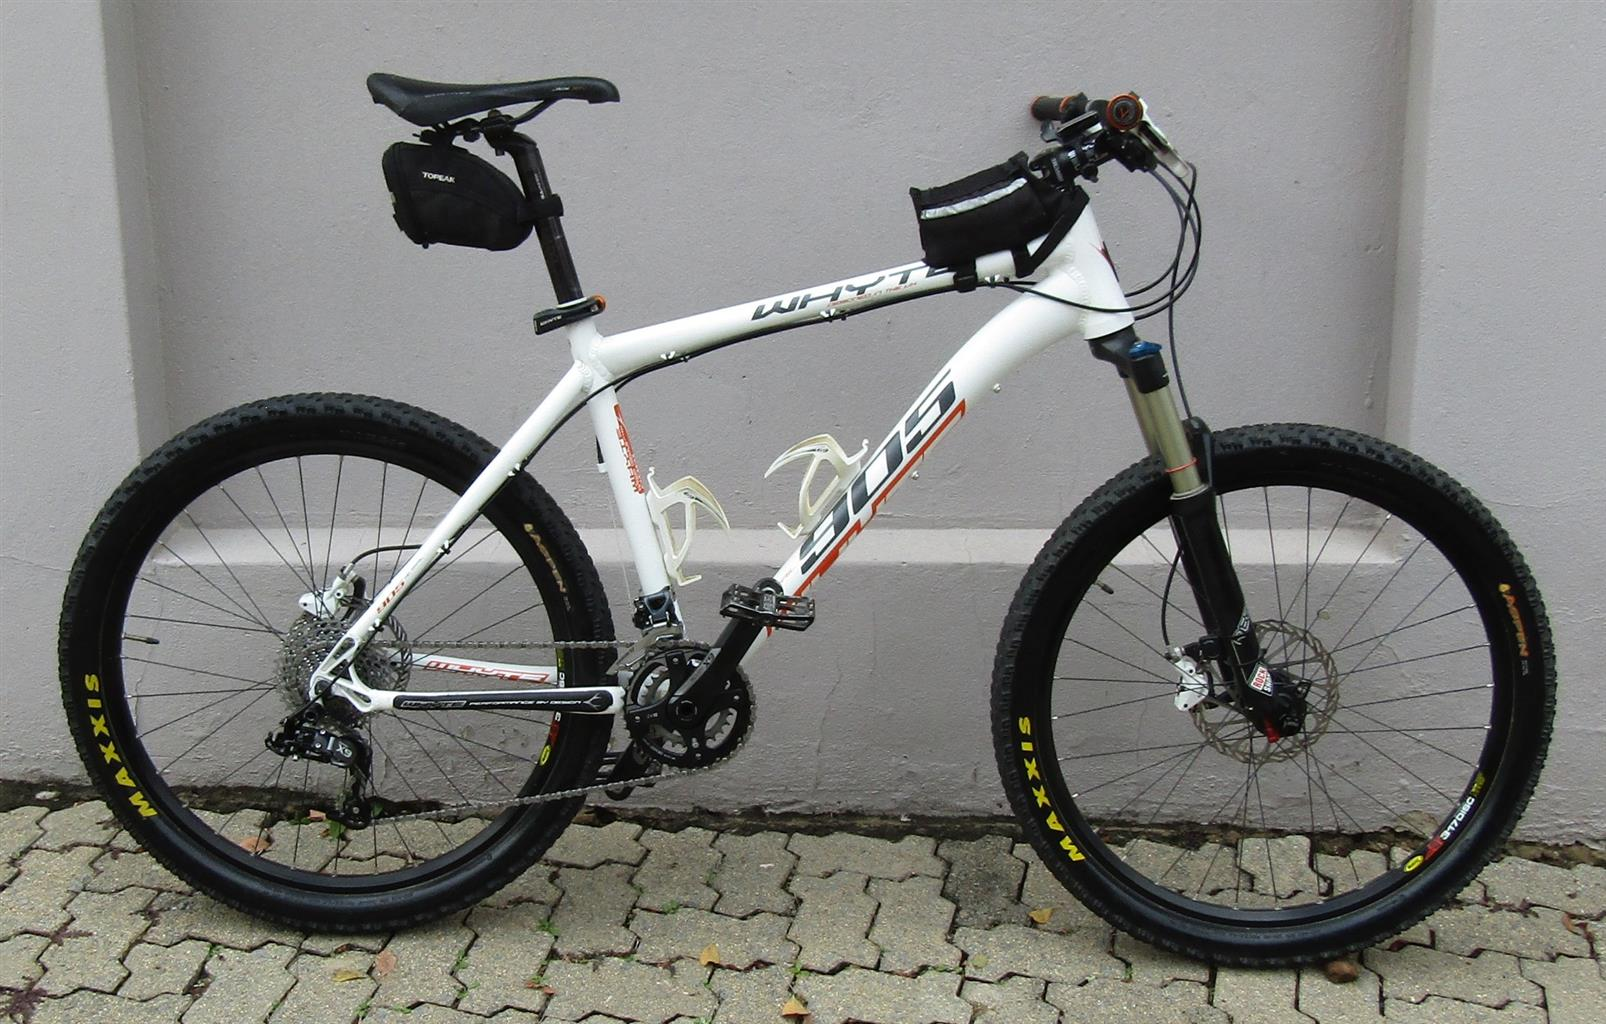 Whyte 26inch MTB with SRAM X9 components